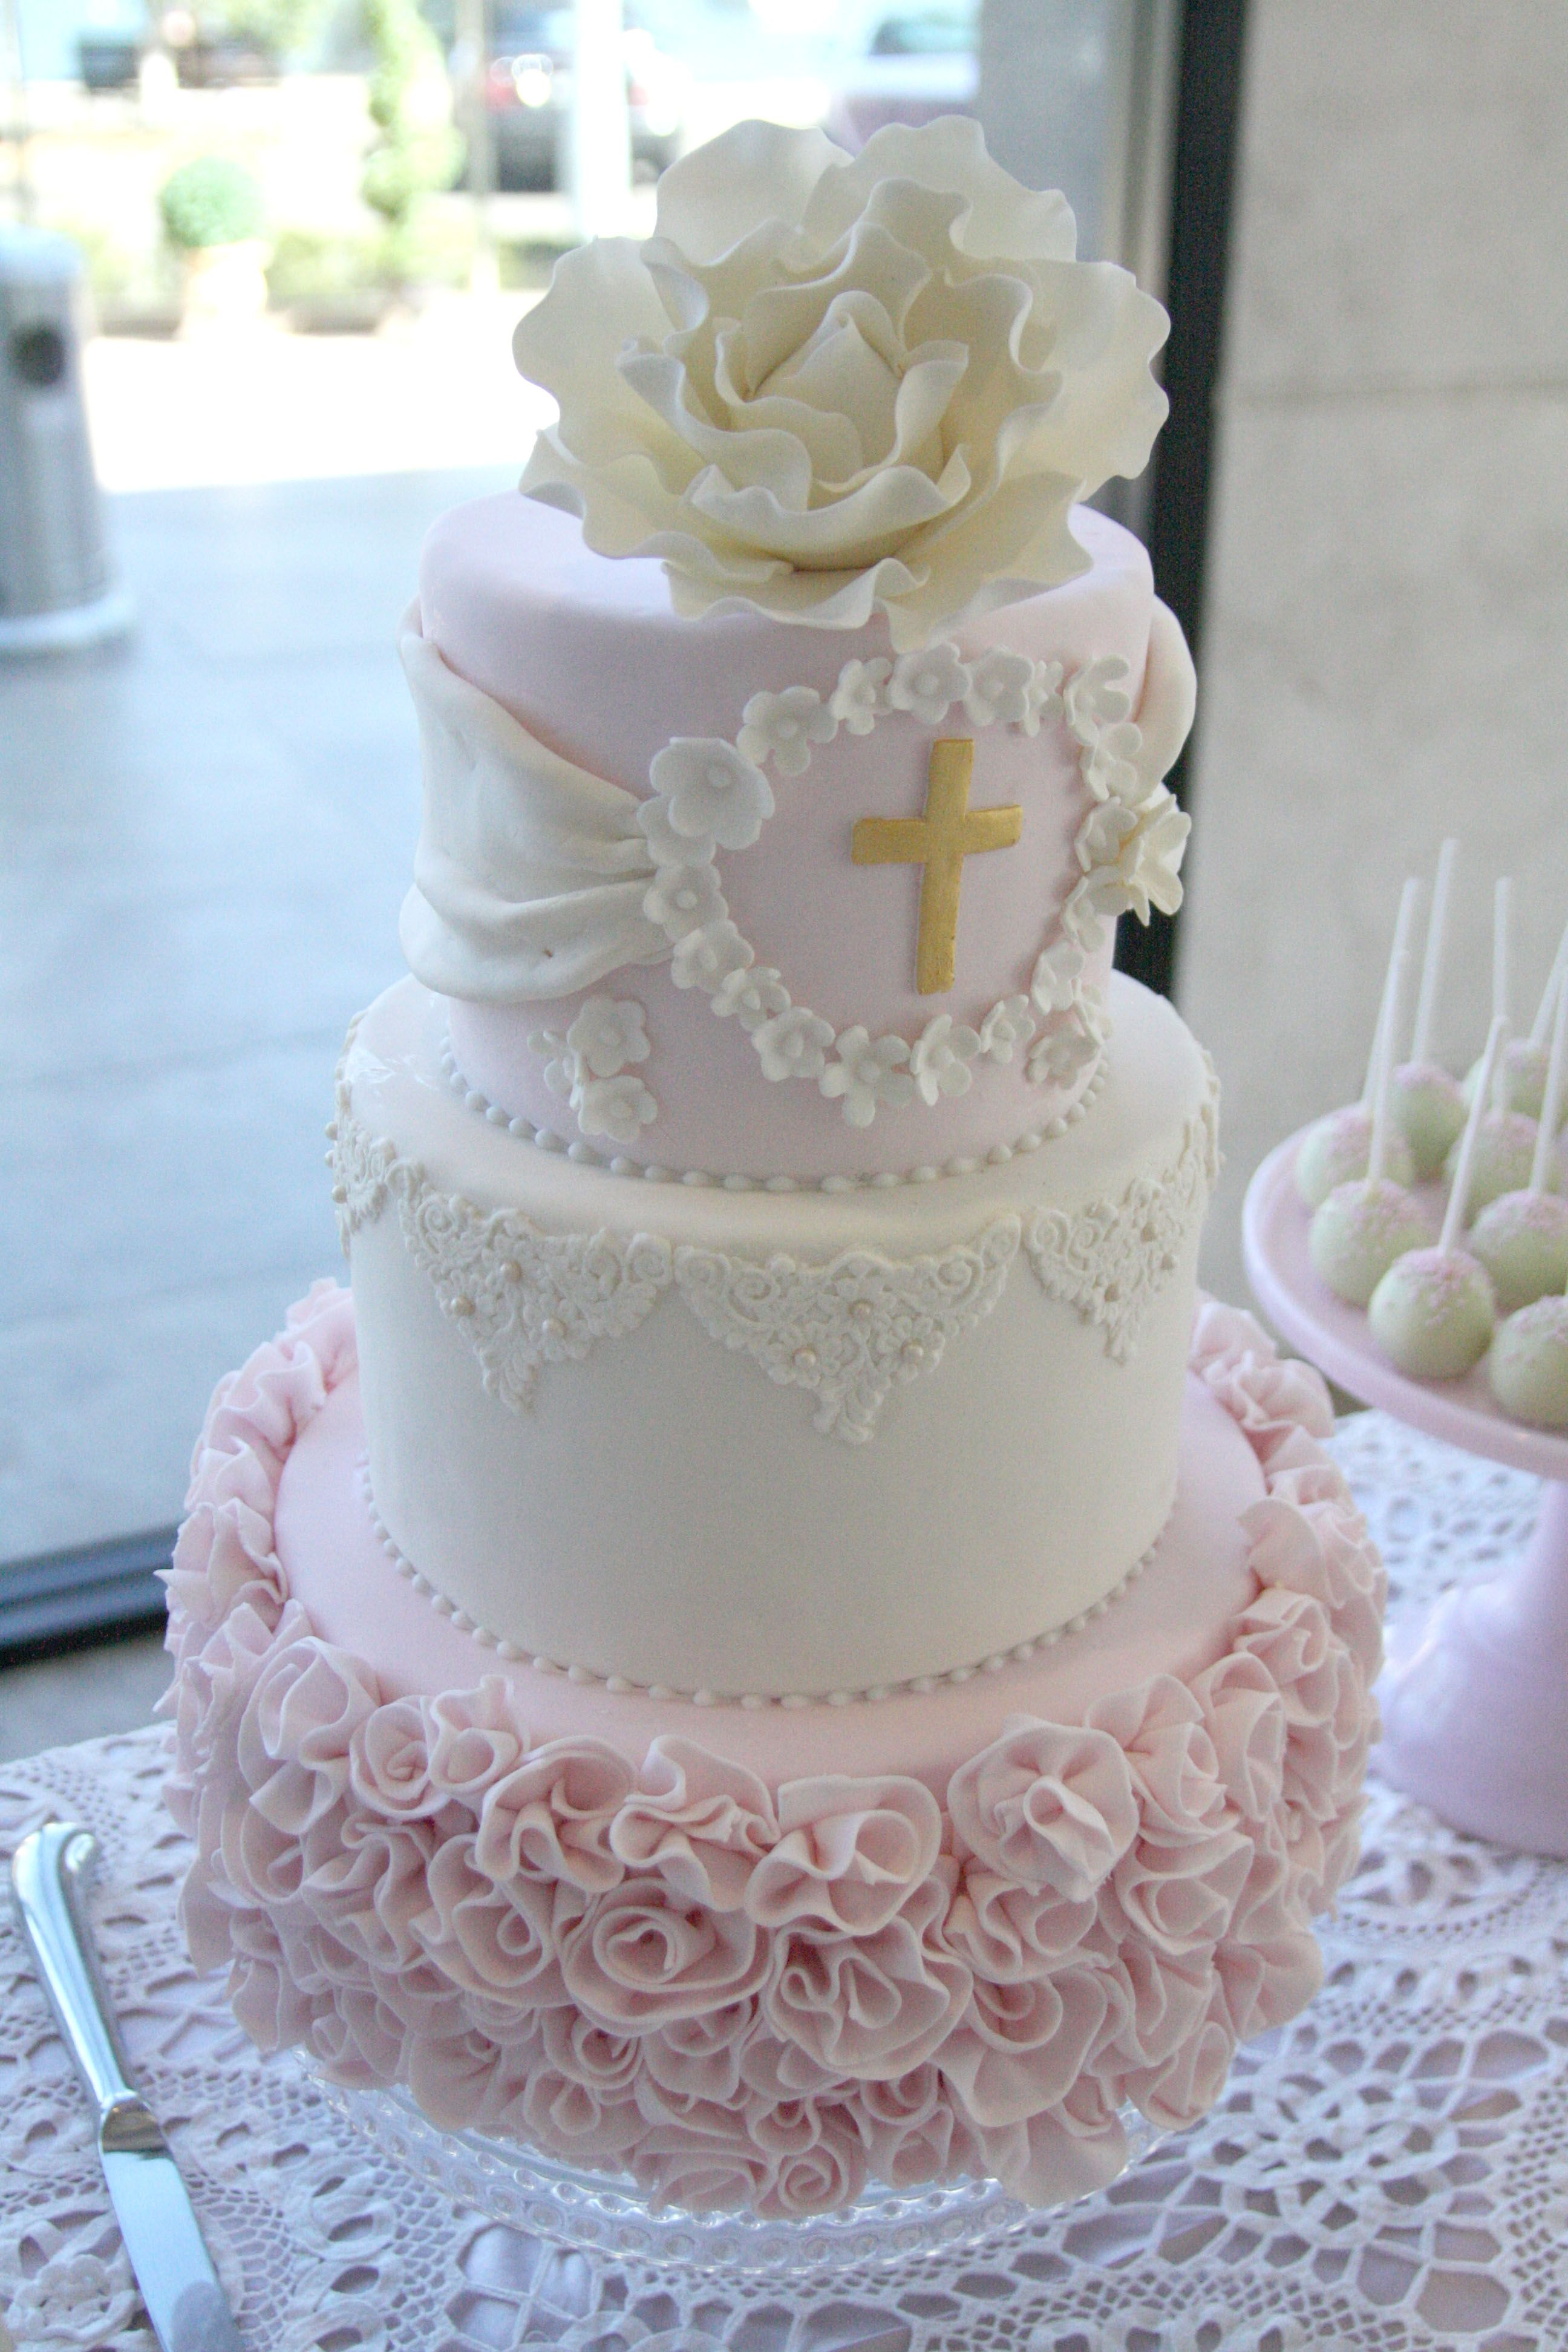 1000+ images about Christening Cakes on Pinterest